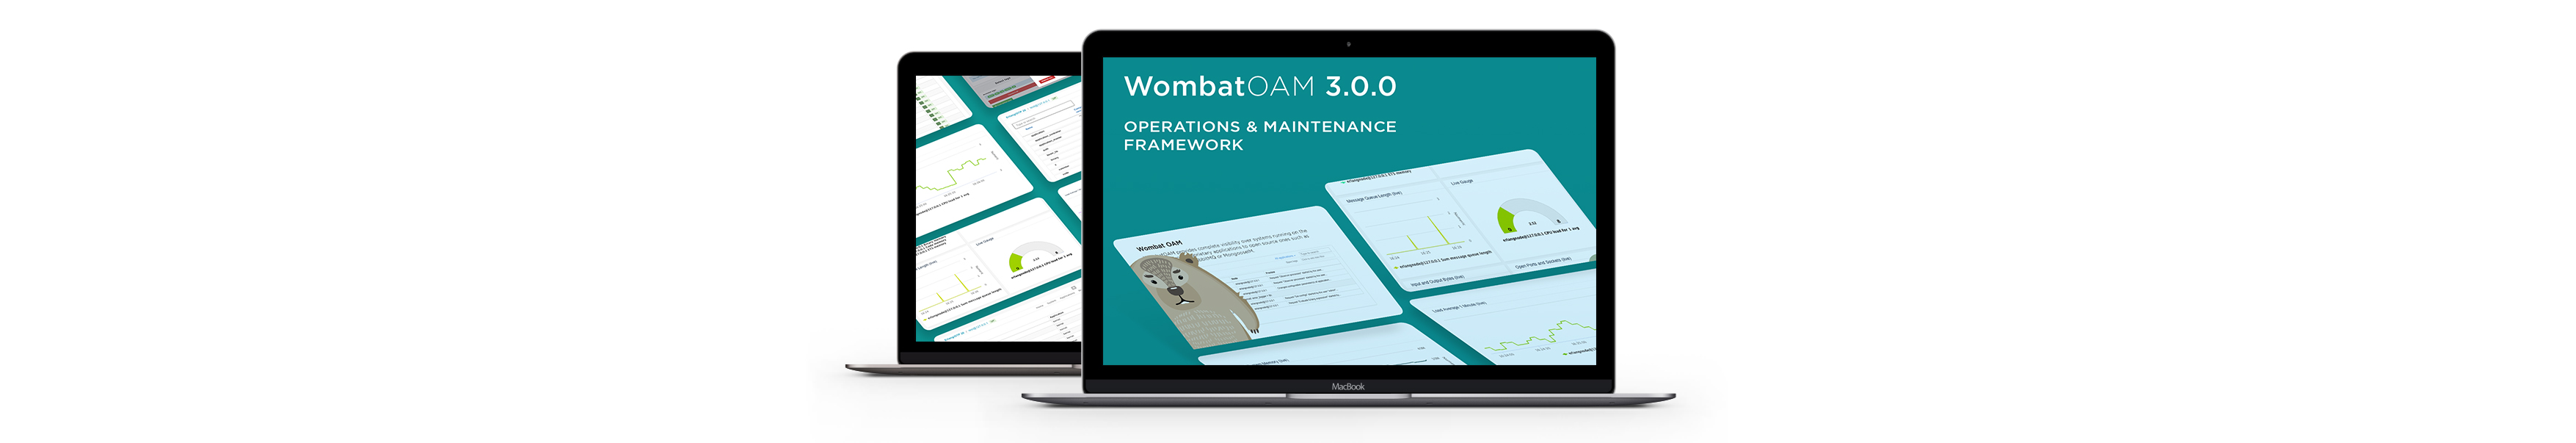 WombatOAM Product Page - 3.0.0 Dashboards